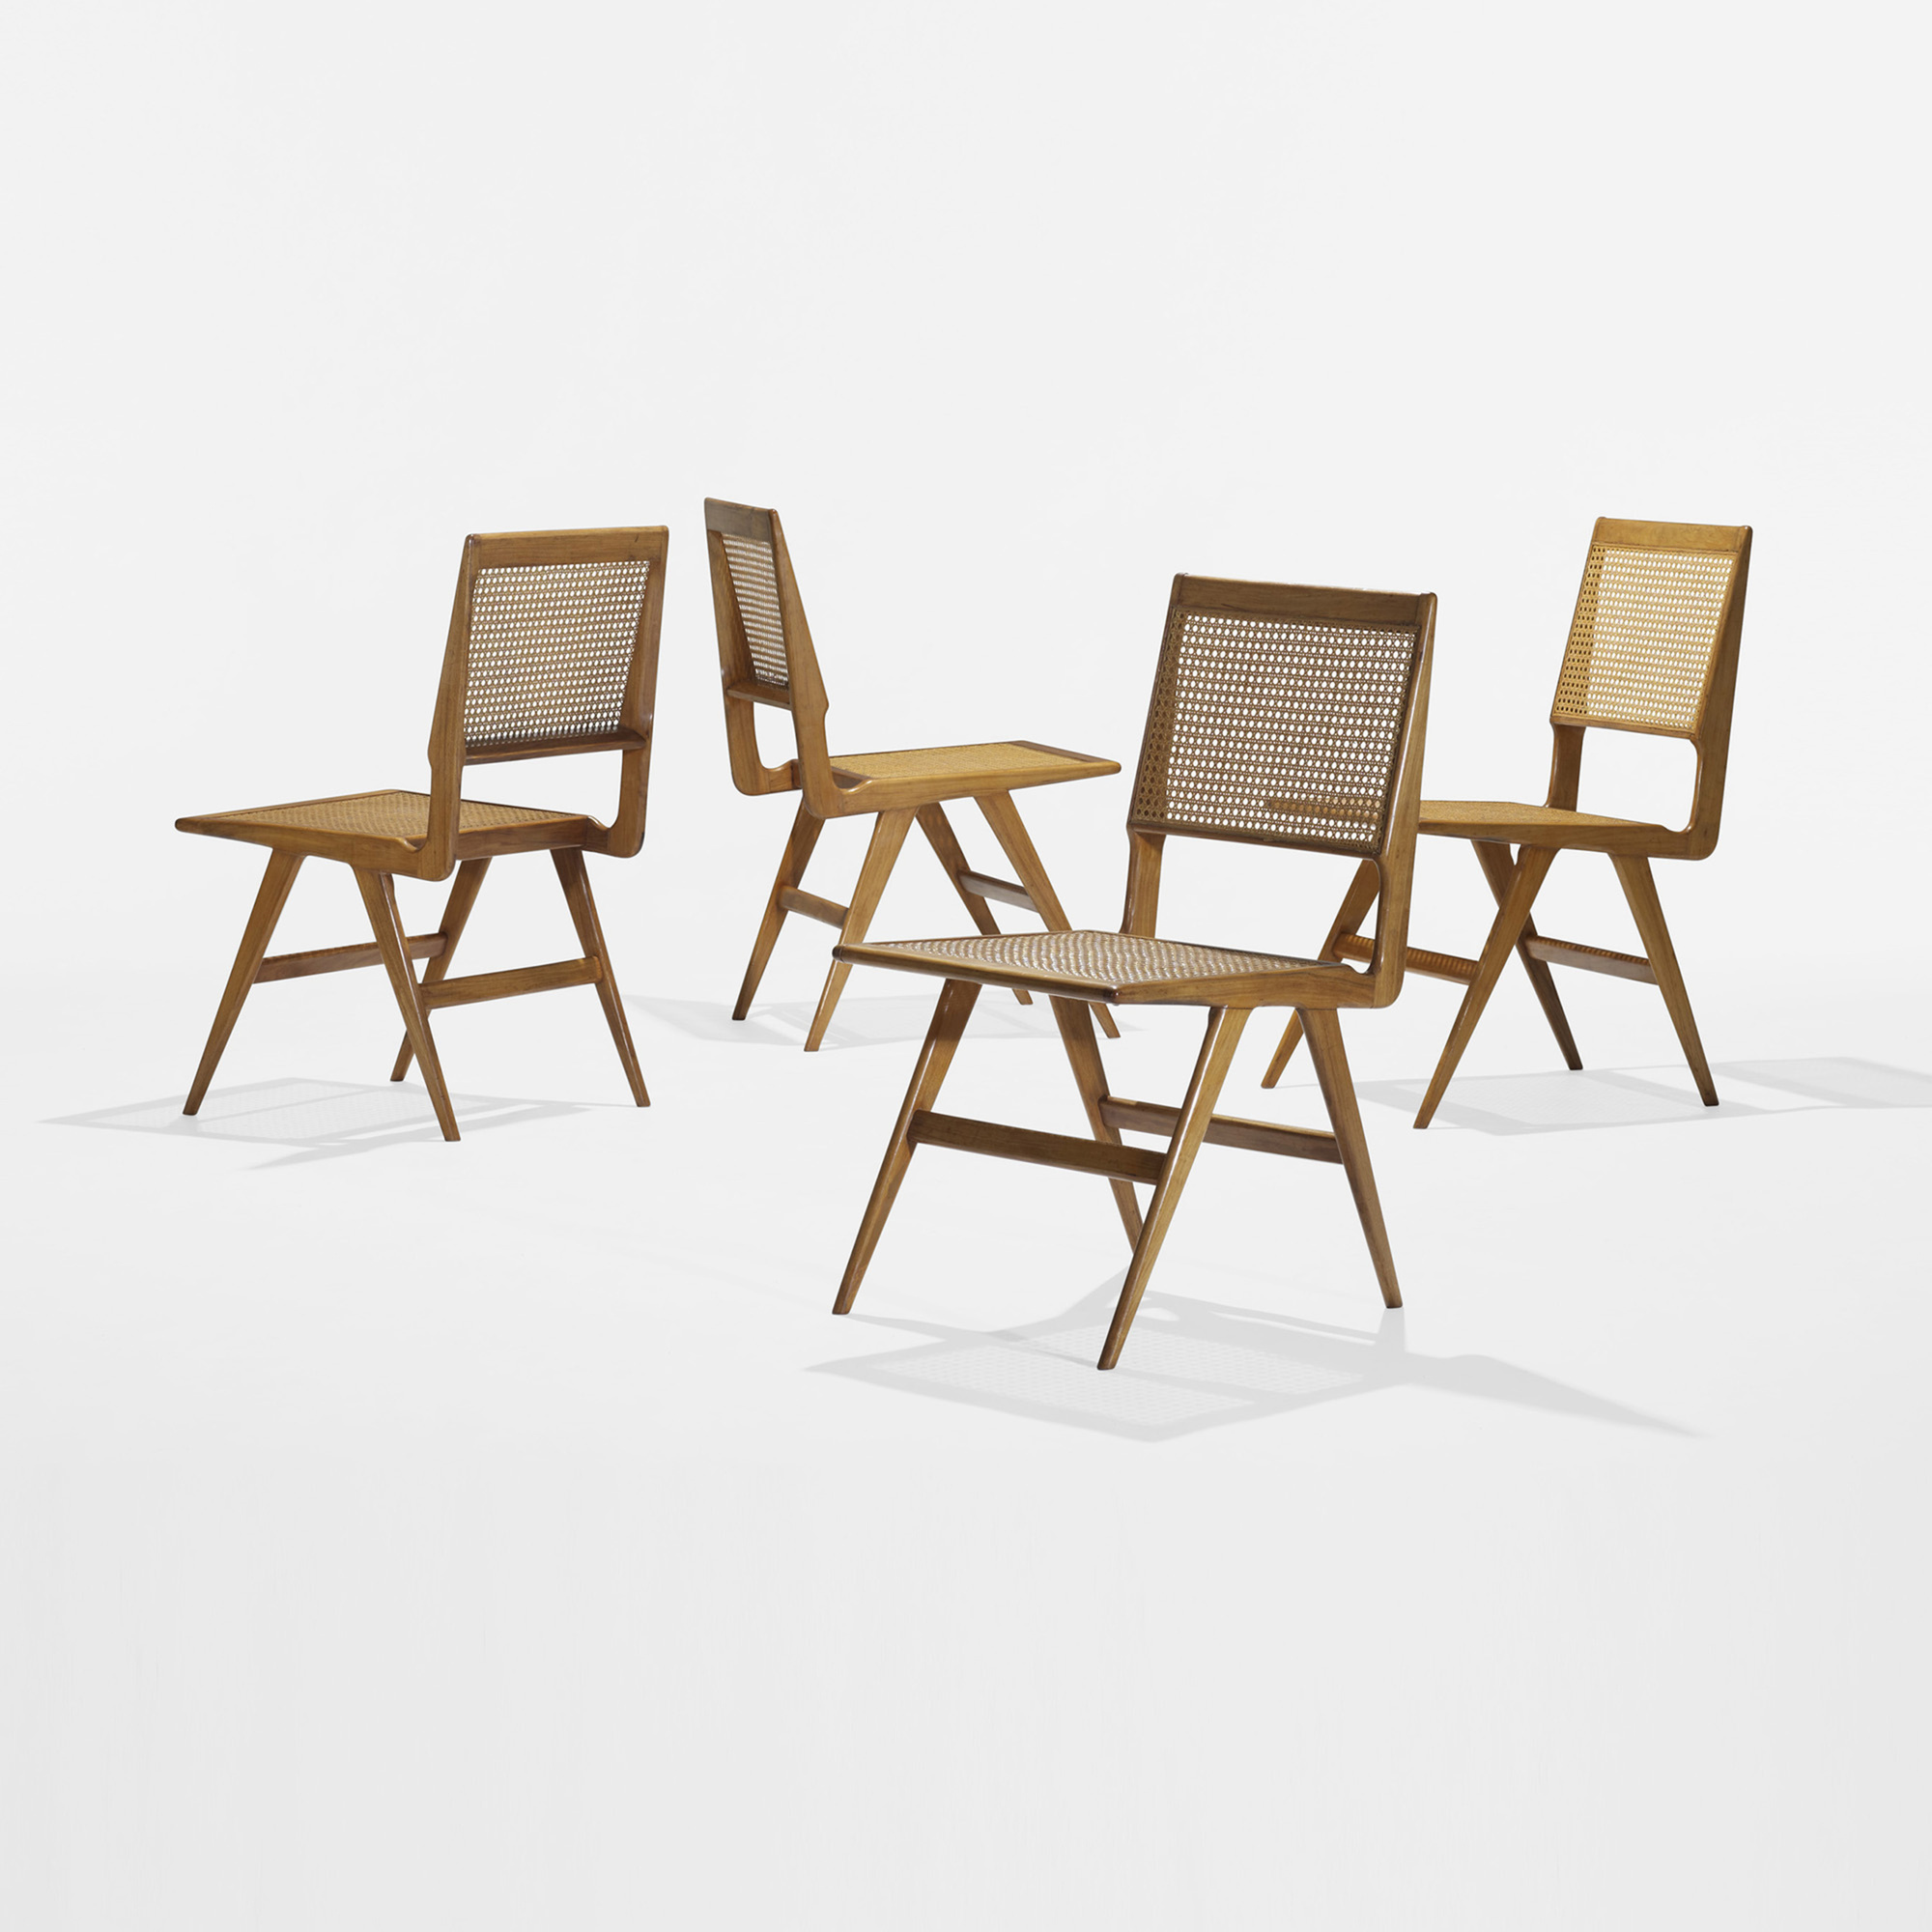 Modern Home Design October 2012: 415: MARTIN EISLER AND CARLO HAUNER, Dining Chairs, Set Of